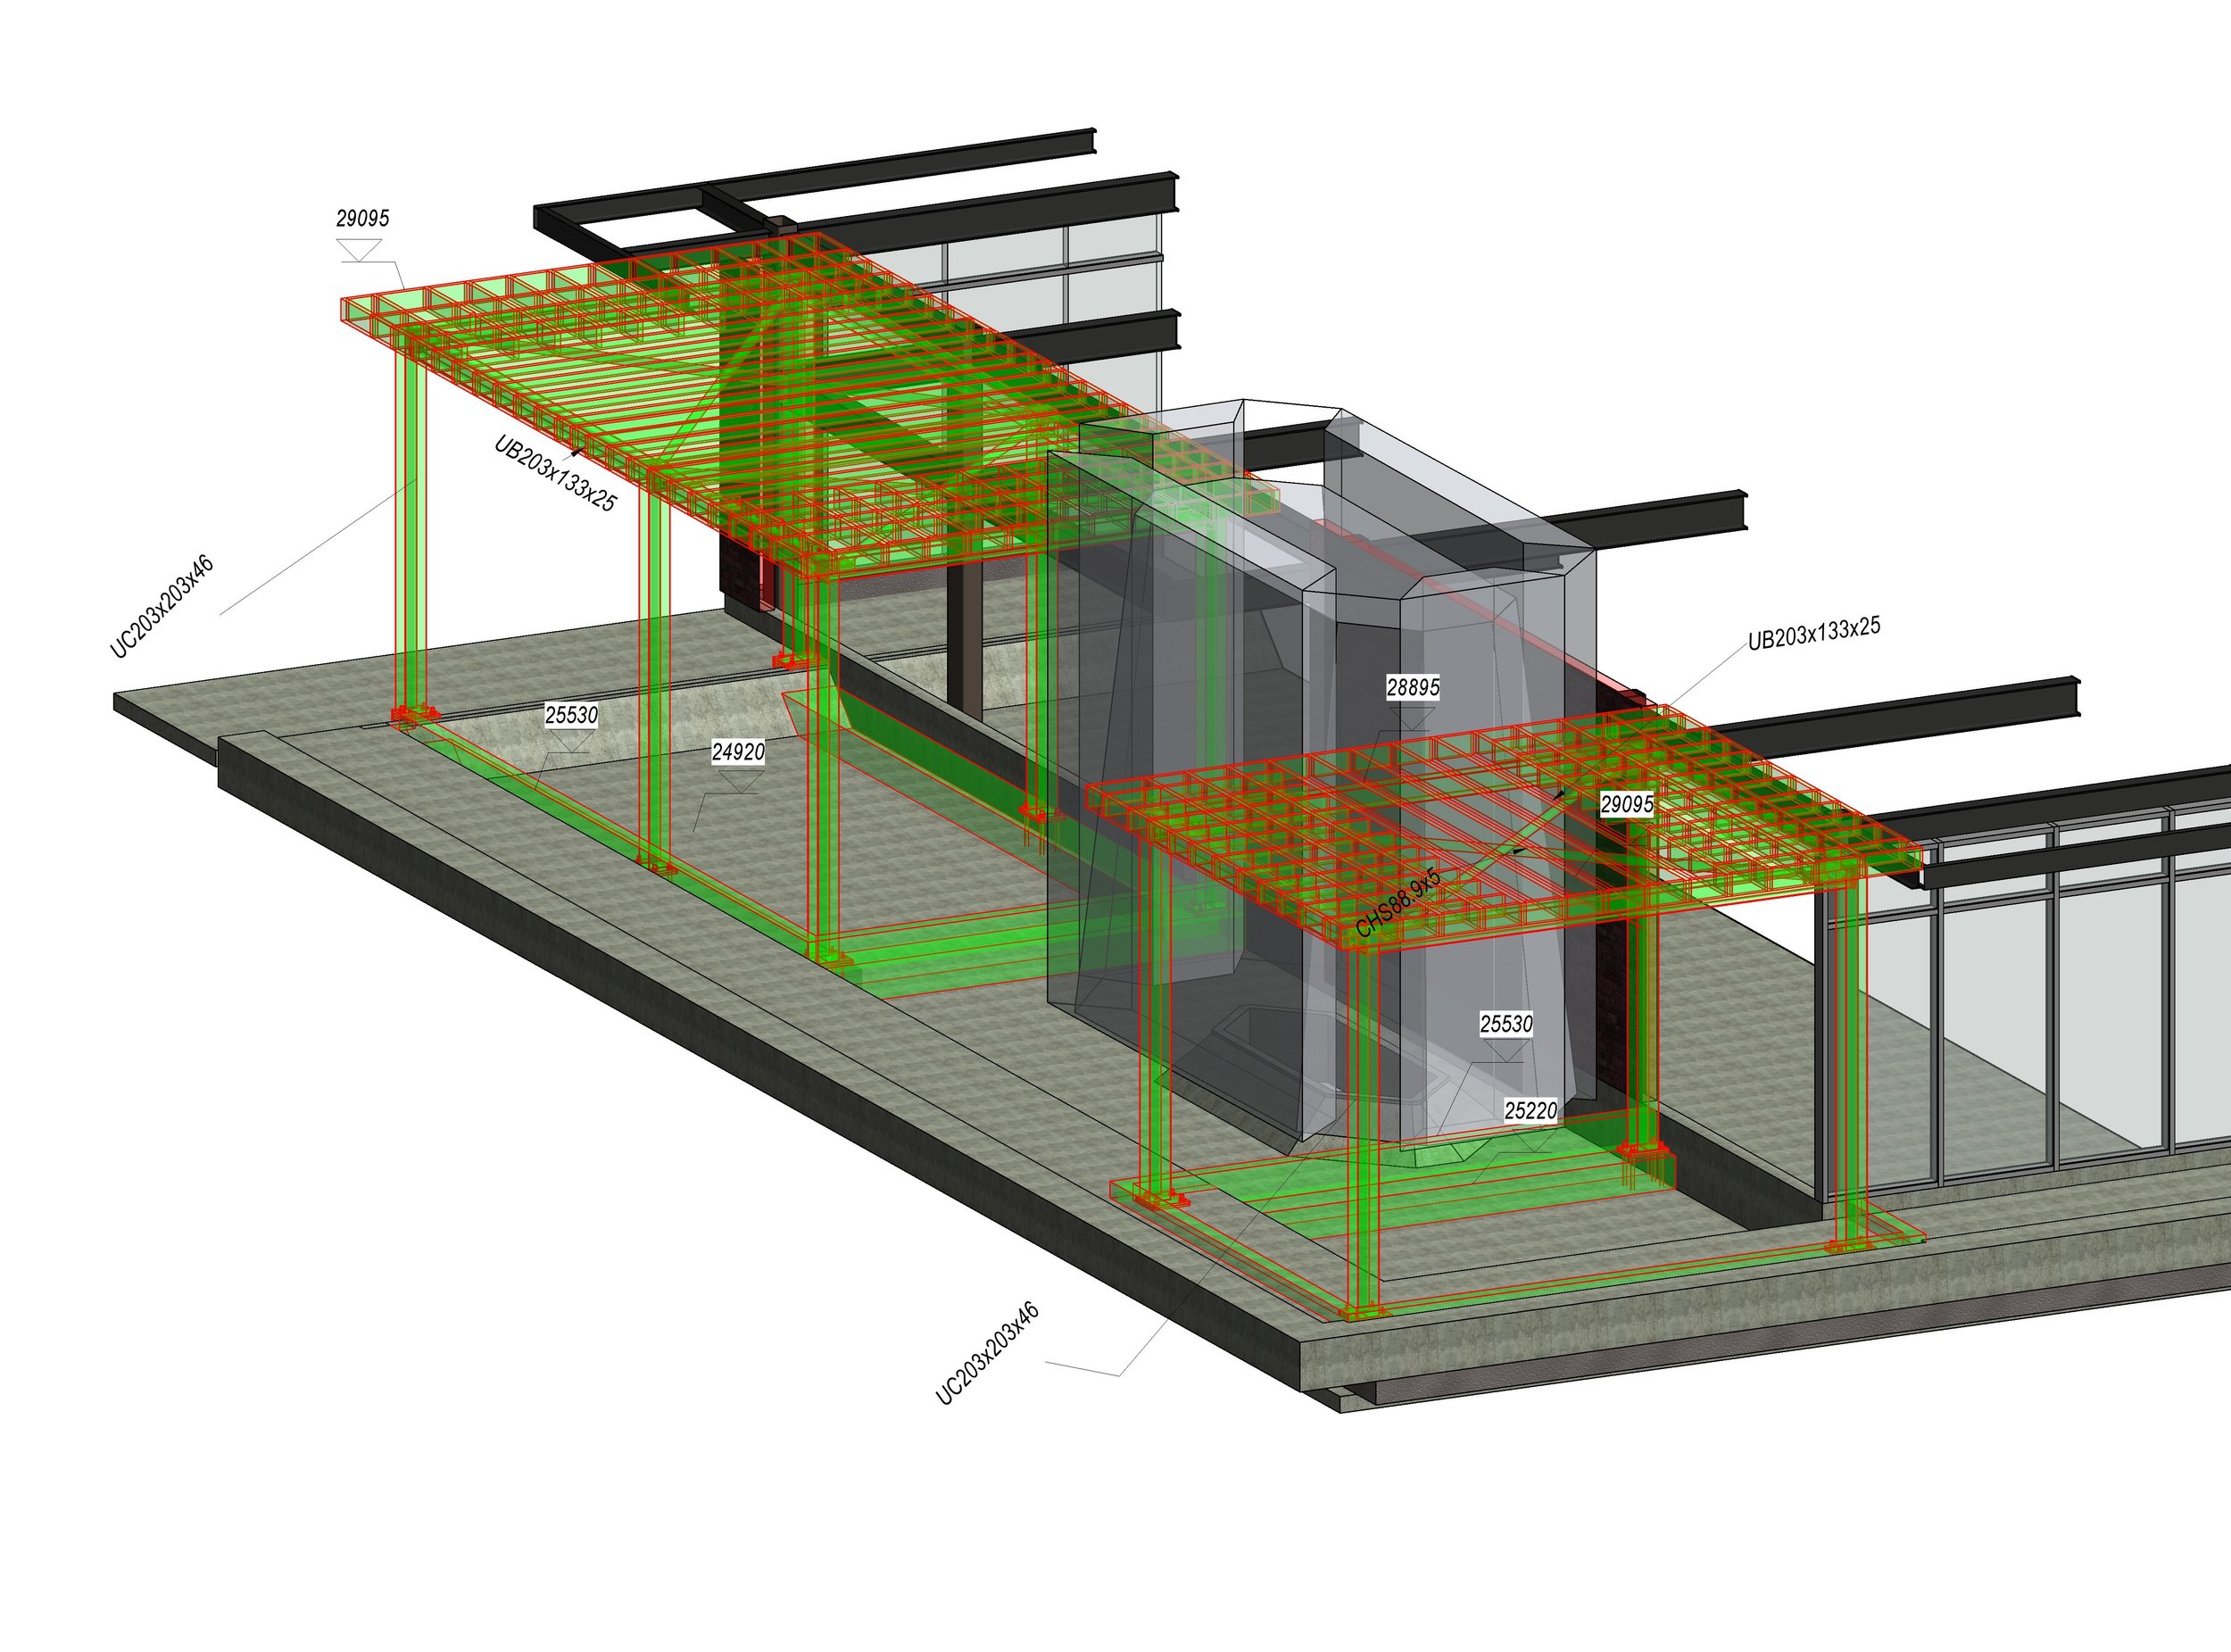 ENG-DWG-VED-VC0503 - 3D View - 3D View--.jpg